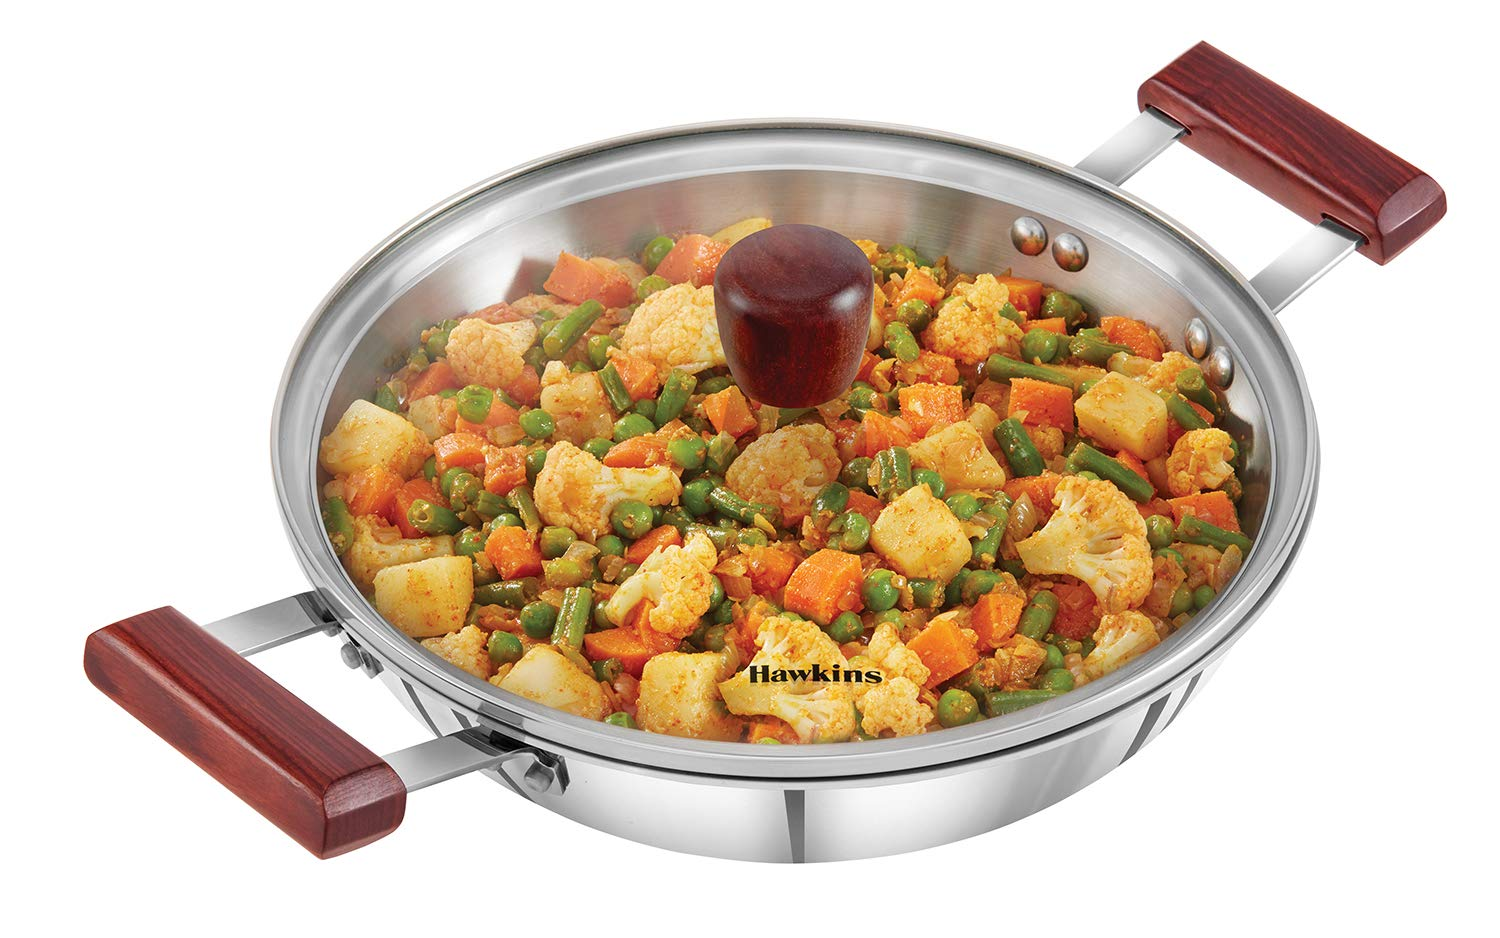 Hawkins Tri-Ply Stainless Steel Induction Compatible Deep-Fry Pan with Glass Lid, Capacity 2.5 Litre, Diameter 26 cm, Thickness 3 mm, Silver (SSD25G)